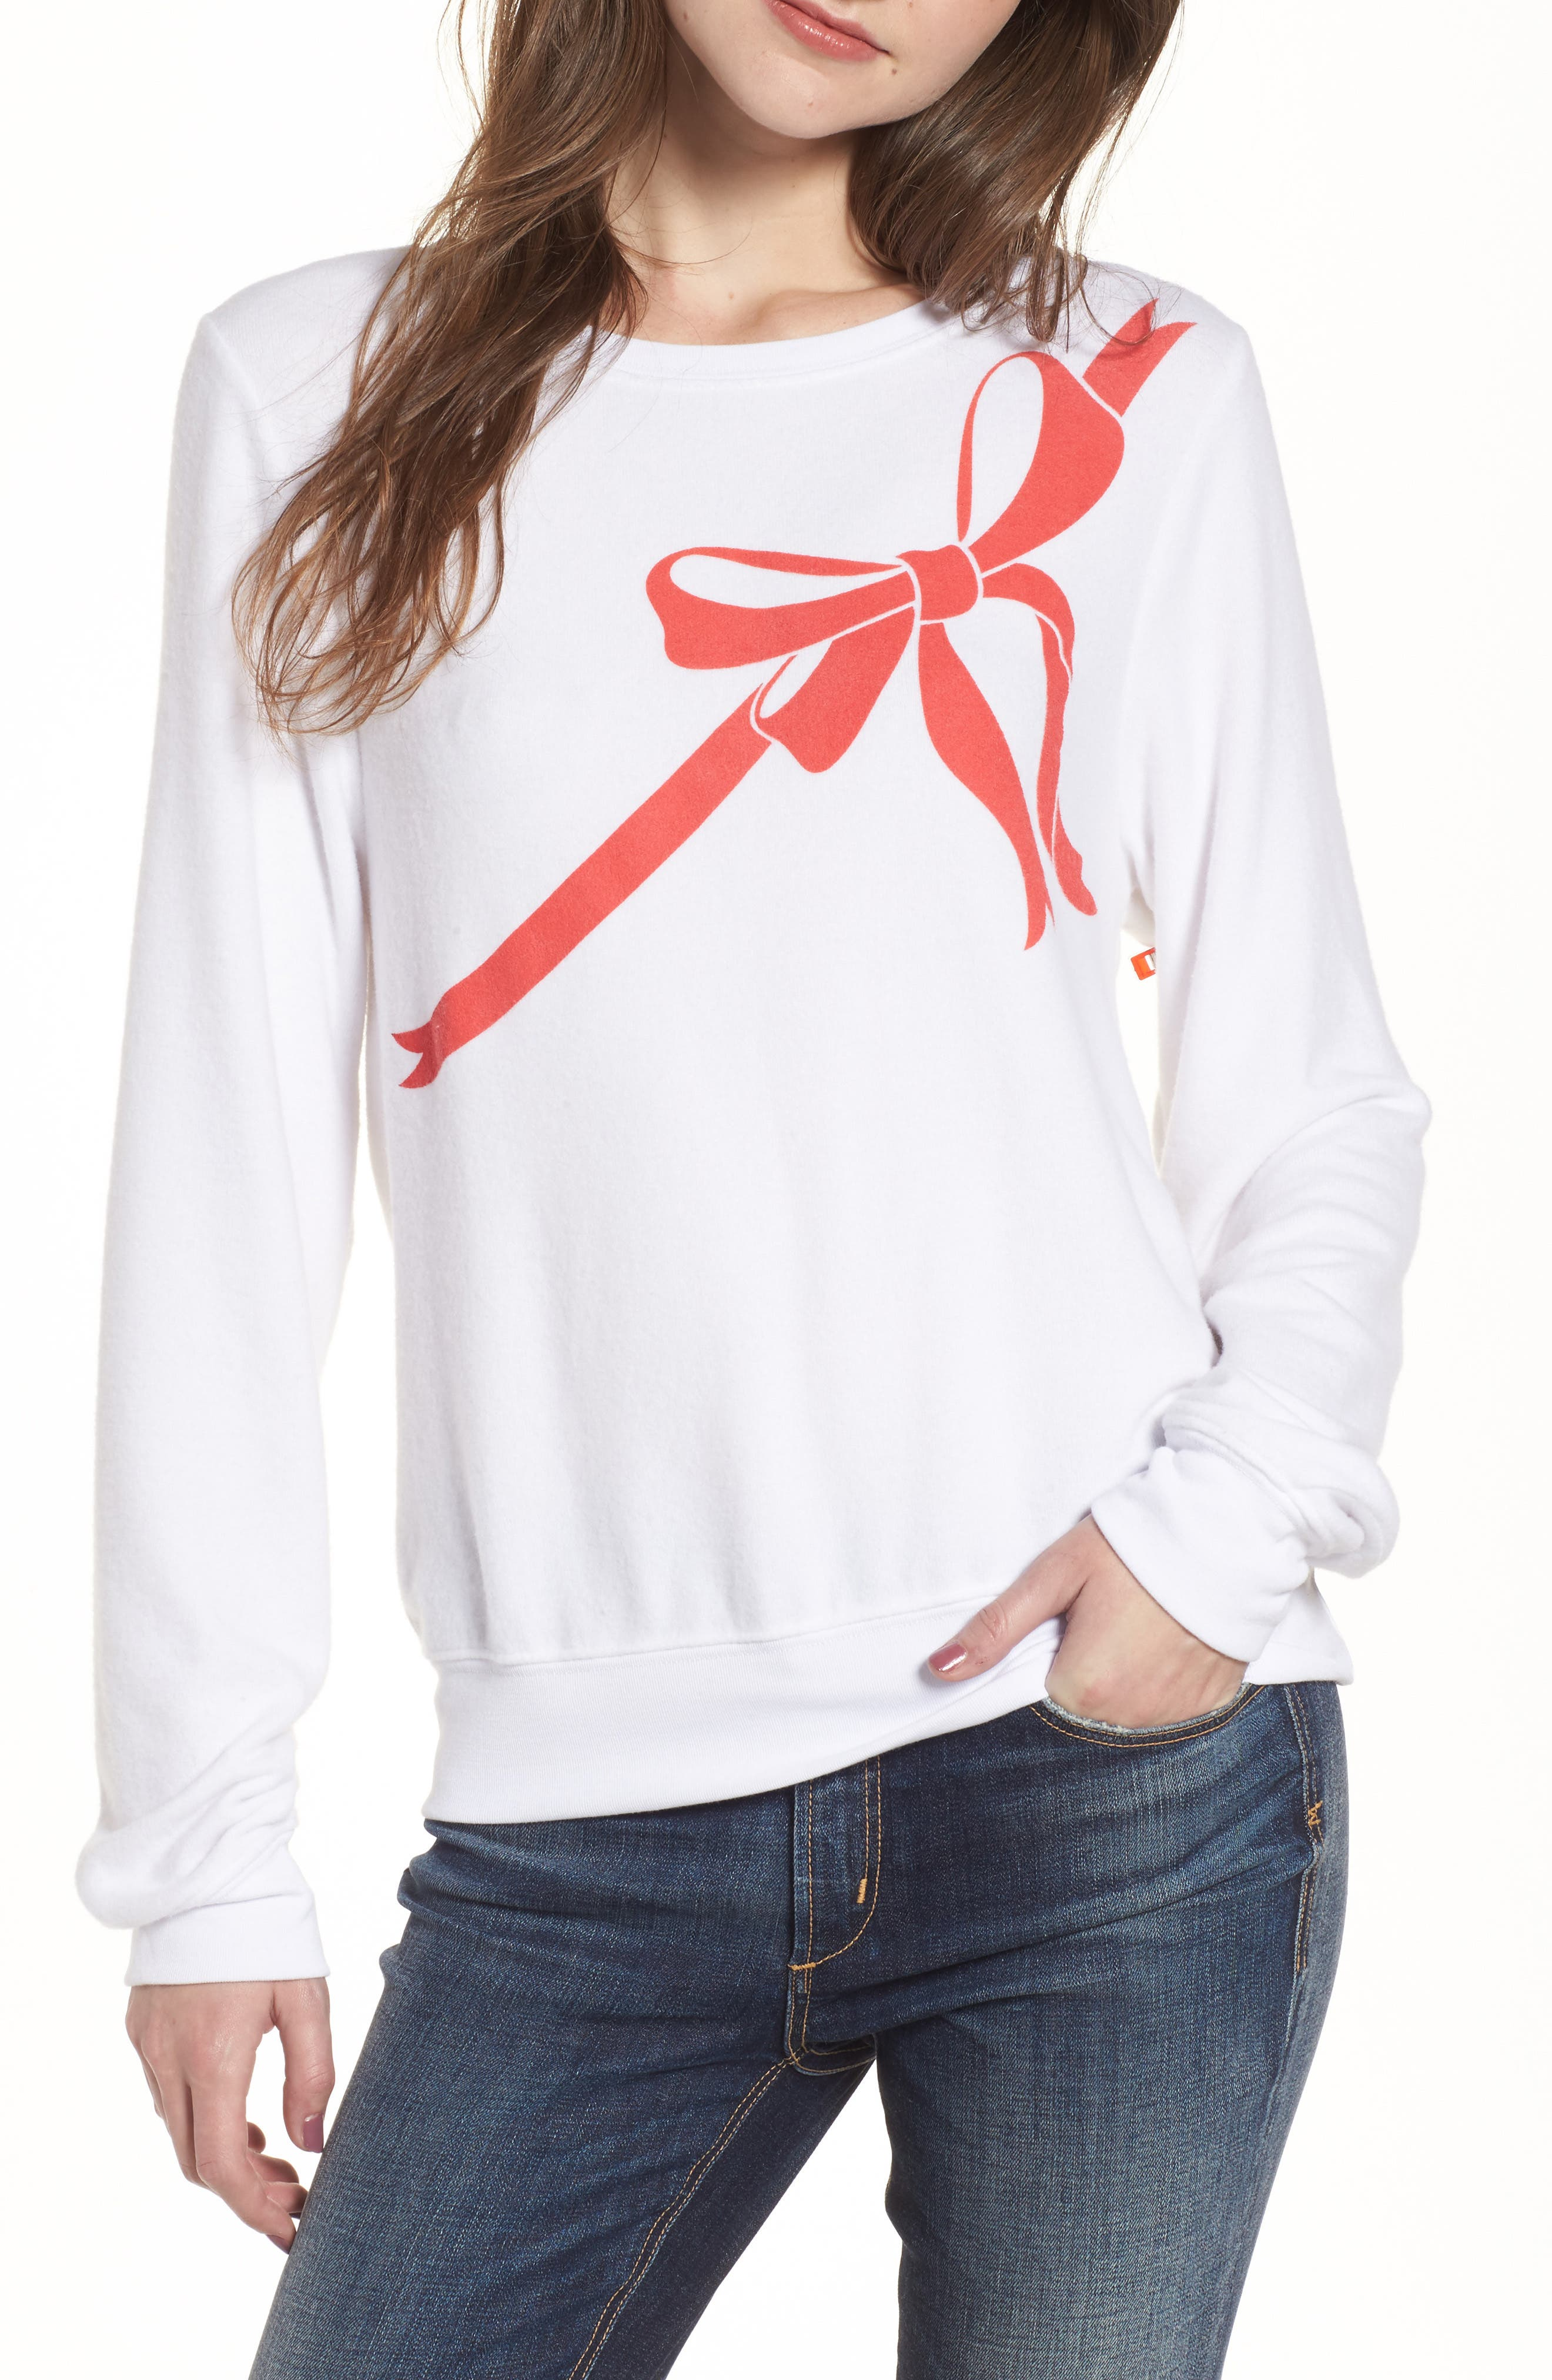 Wildfox Gift Wrapped Sweatshirt